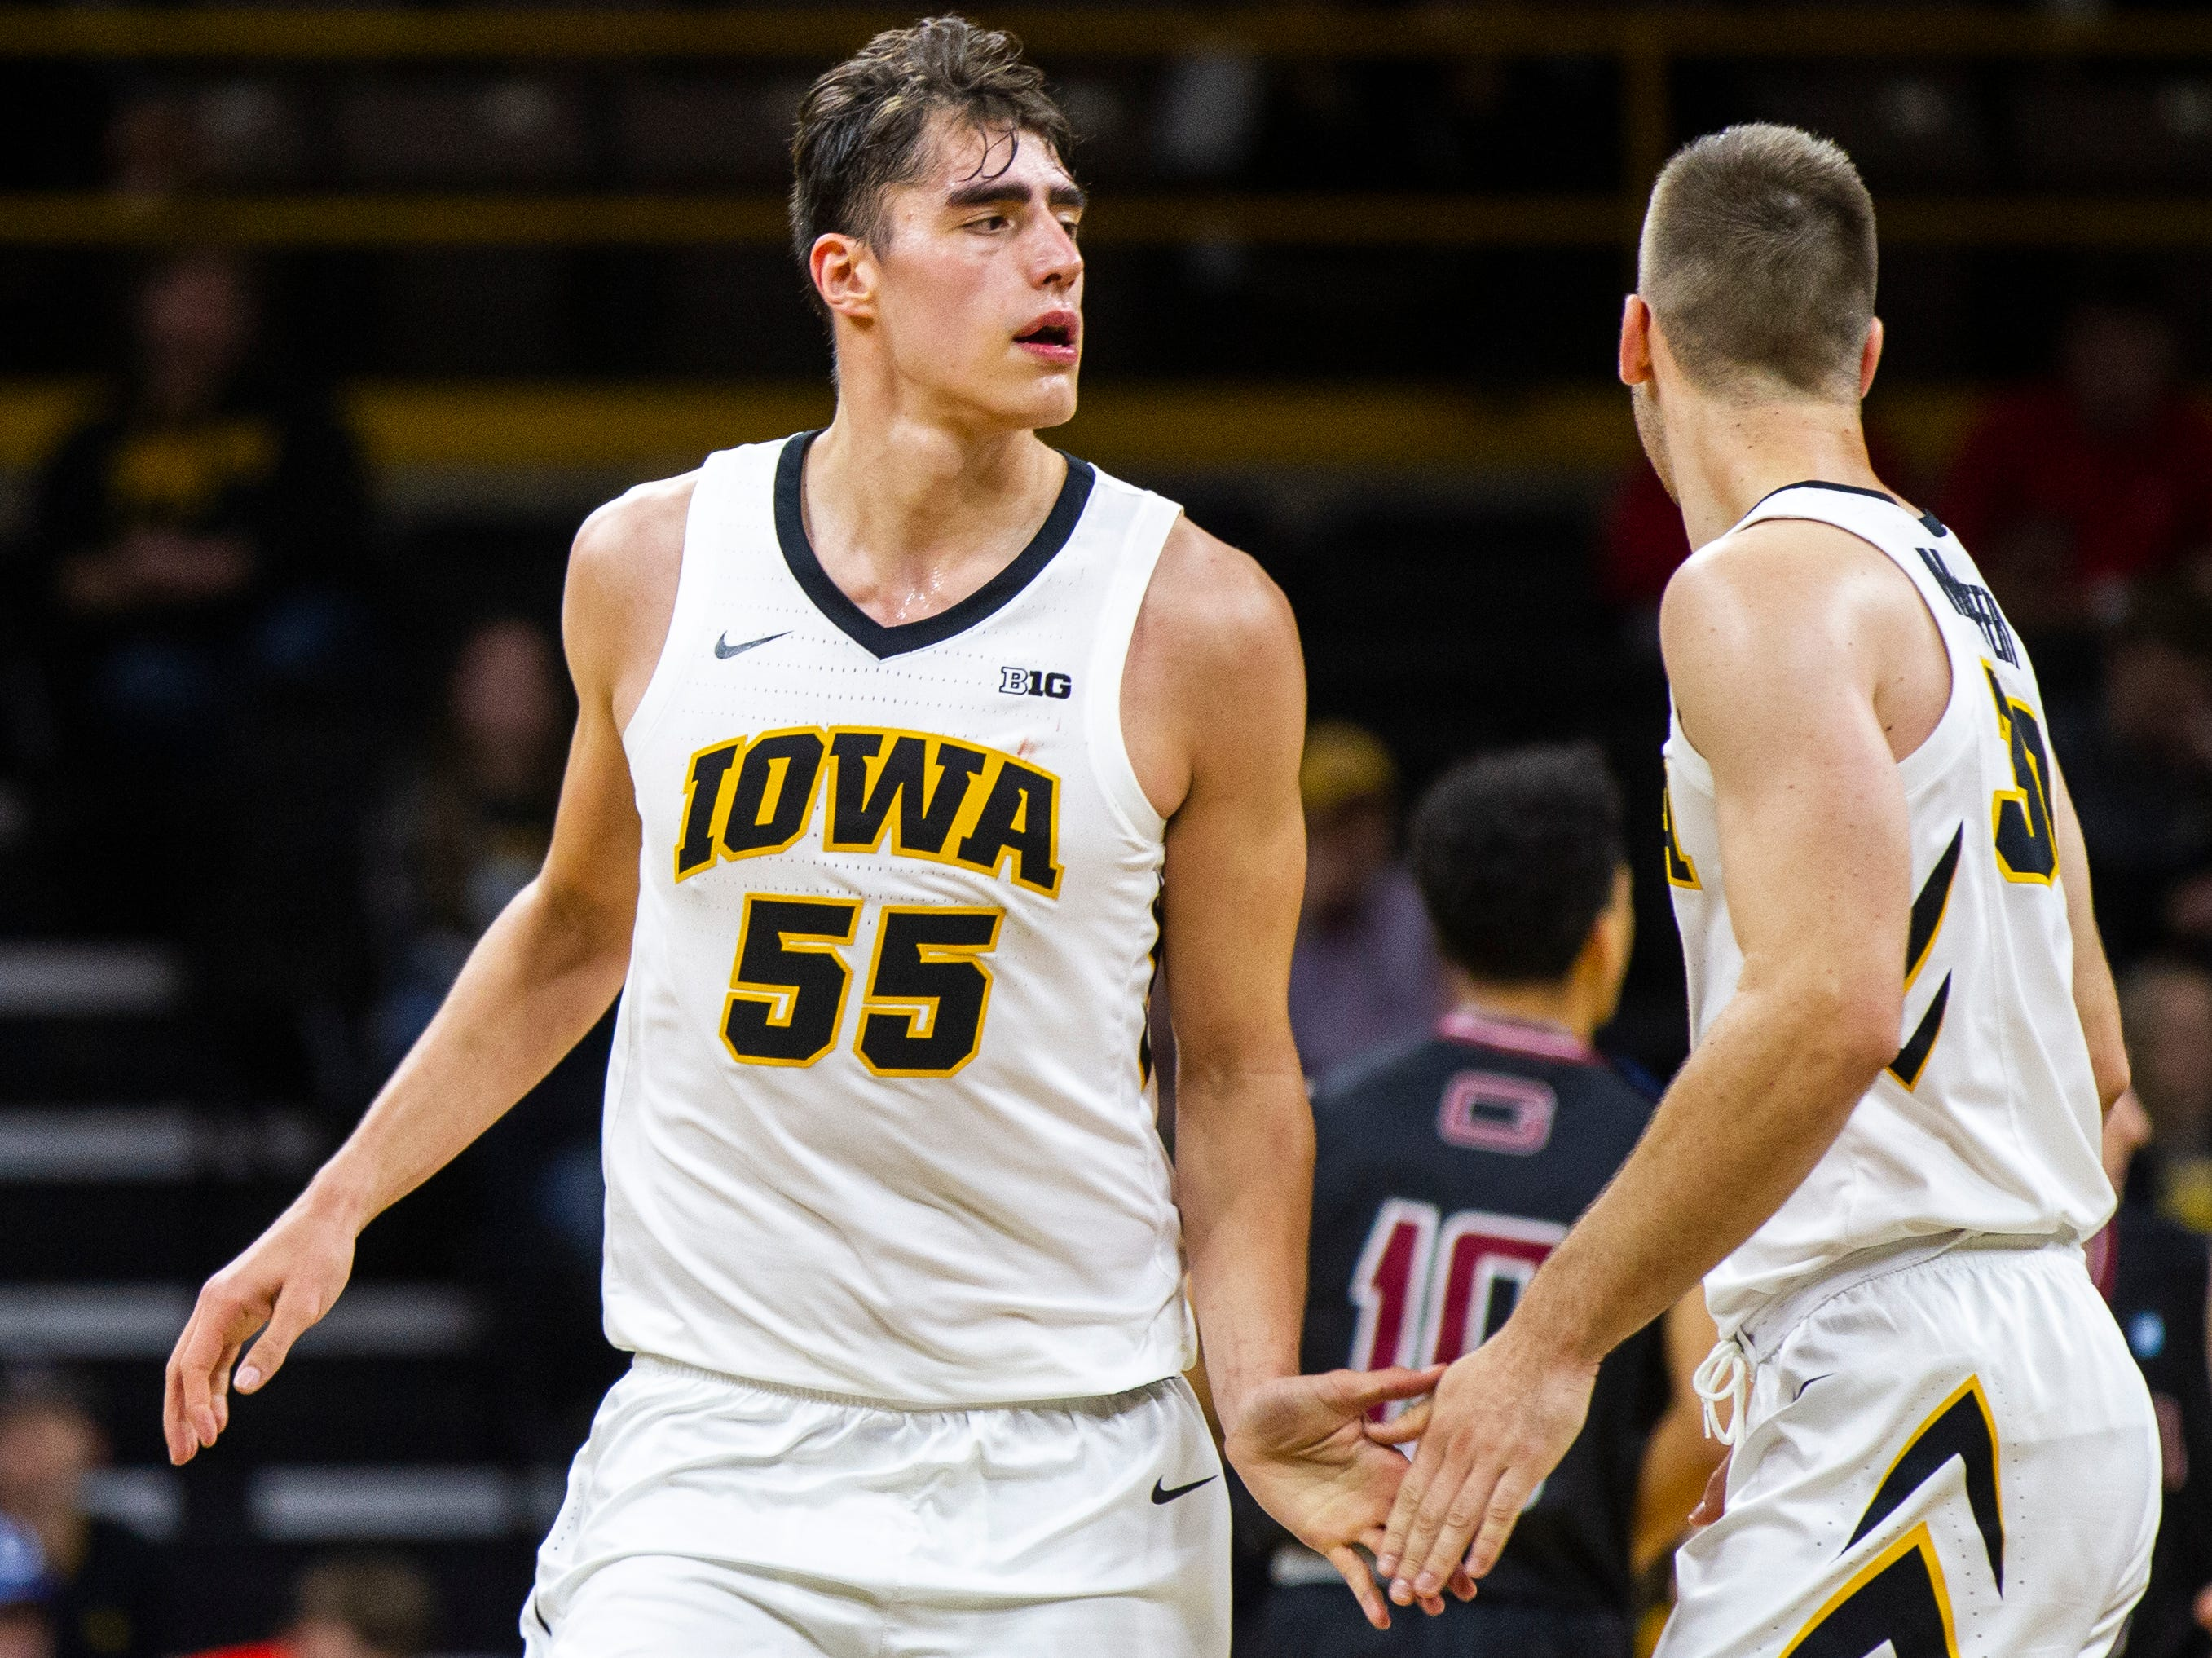 Iowa forward Luka Garza (55) gets a high-five from Iowa guard Connor McCaffery (30) during a men's basketball exhibition game on Sunday, Nov. 4, 2018, at Carver-Hawkeye Arena in Iowa City.